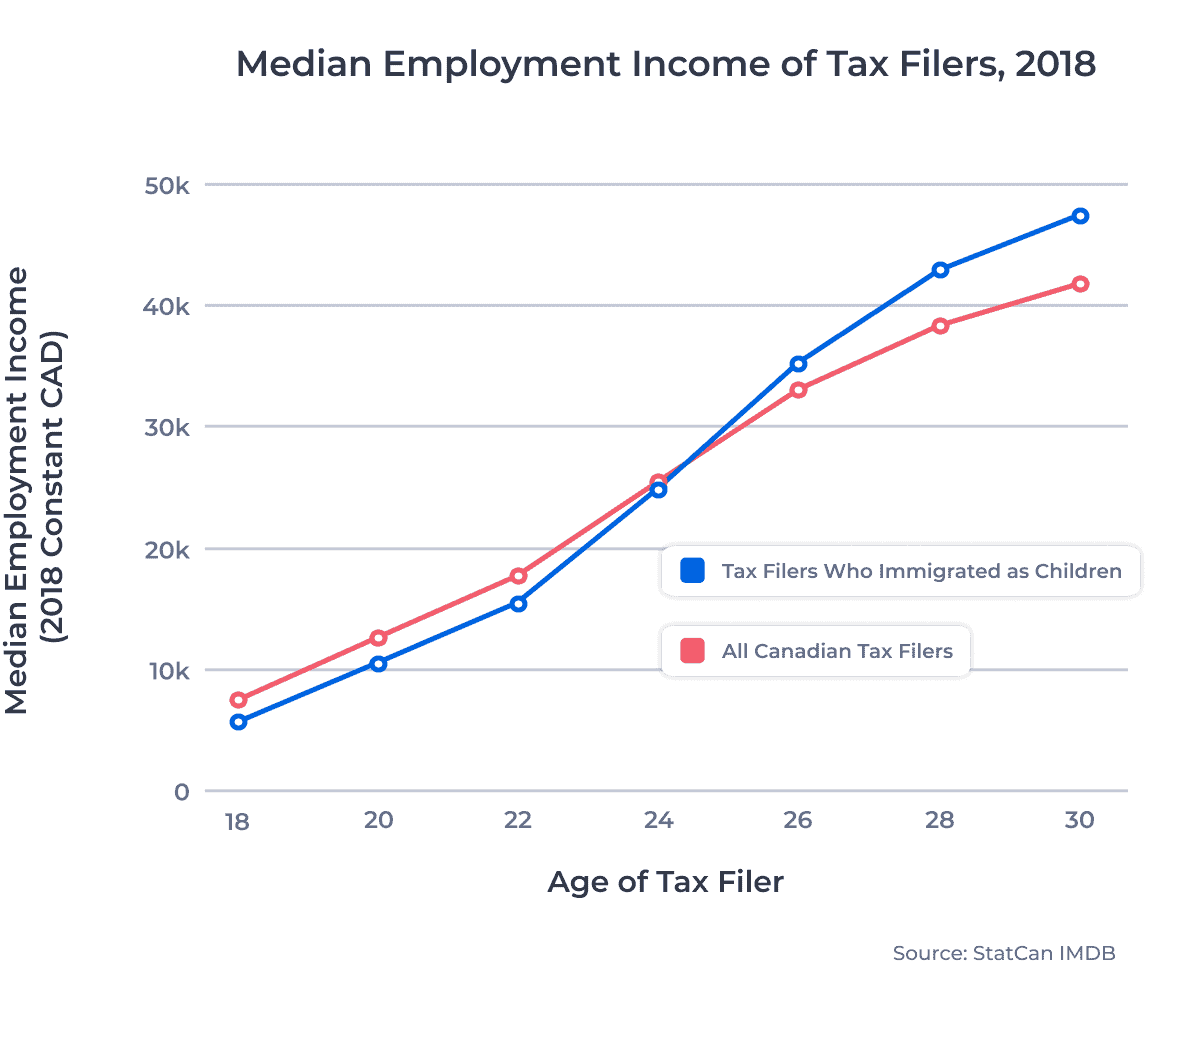 Median Employment Income of Tax Filers, 2018